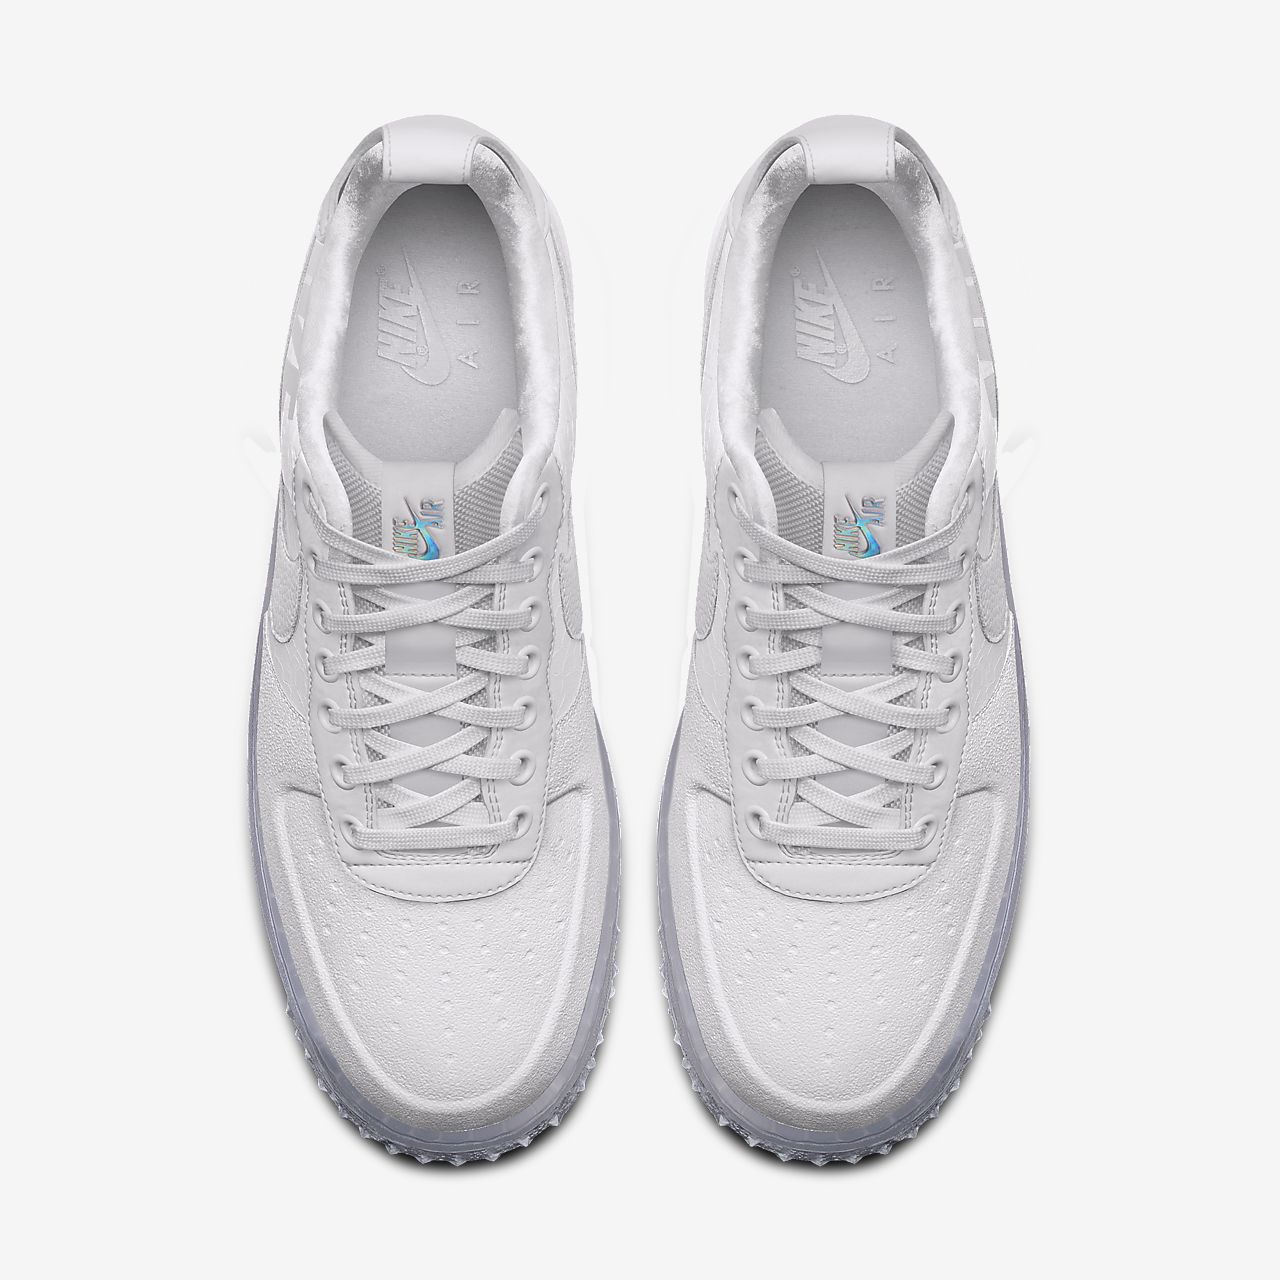 Chaussure Nike Air Max 95 iD Winter White pour Homme